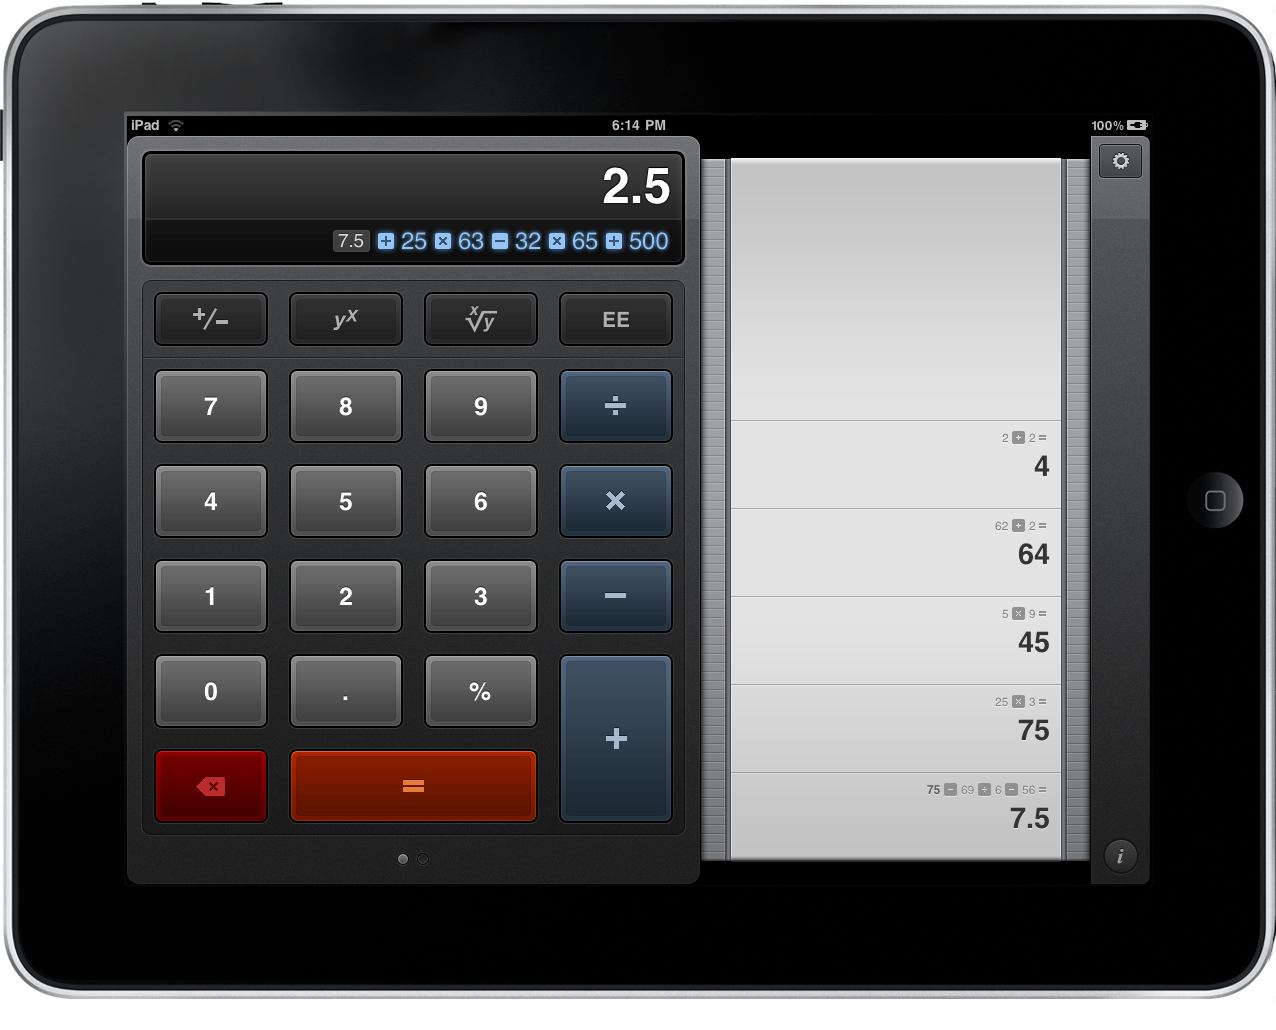 See The Default Calculator From Le Is Good It Does What Has To Do Looks Decent There S Nothing Wrong About Could Be Better